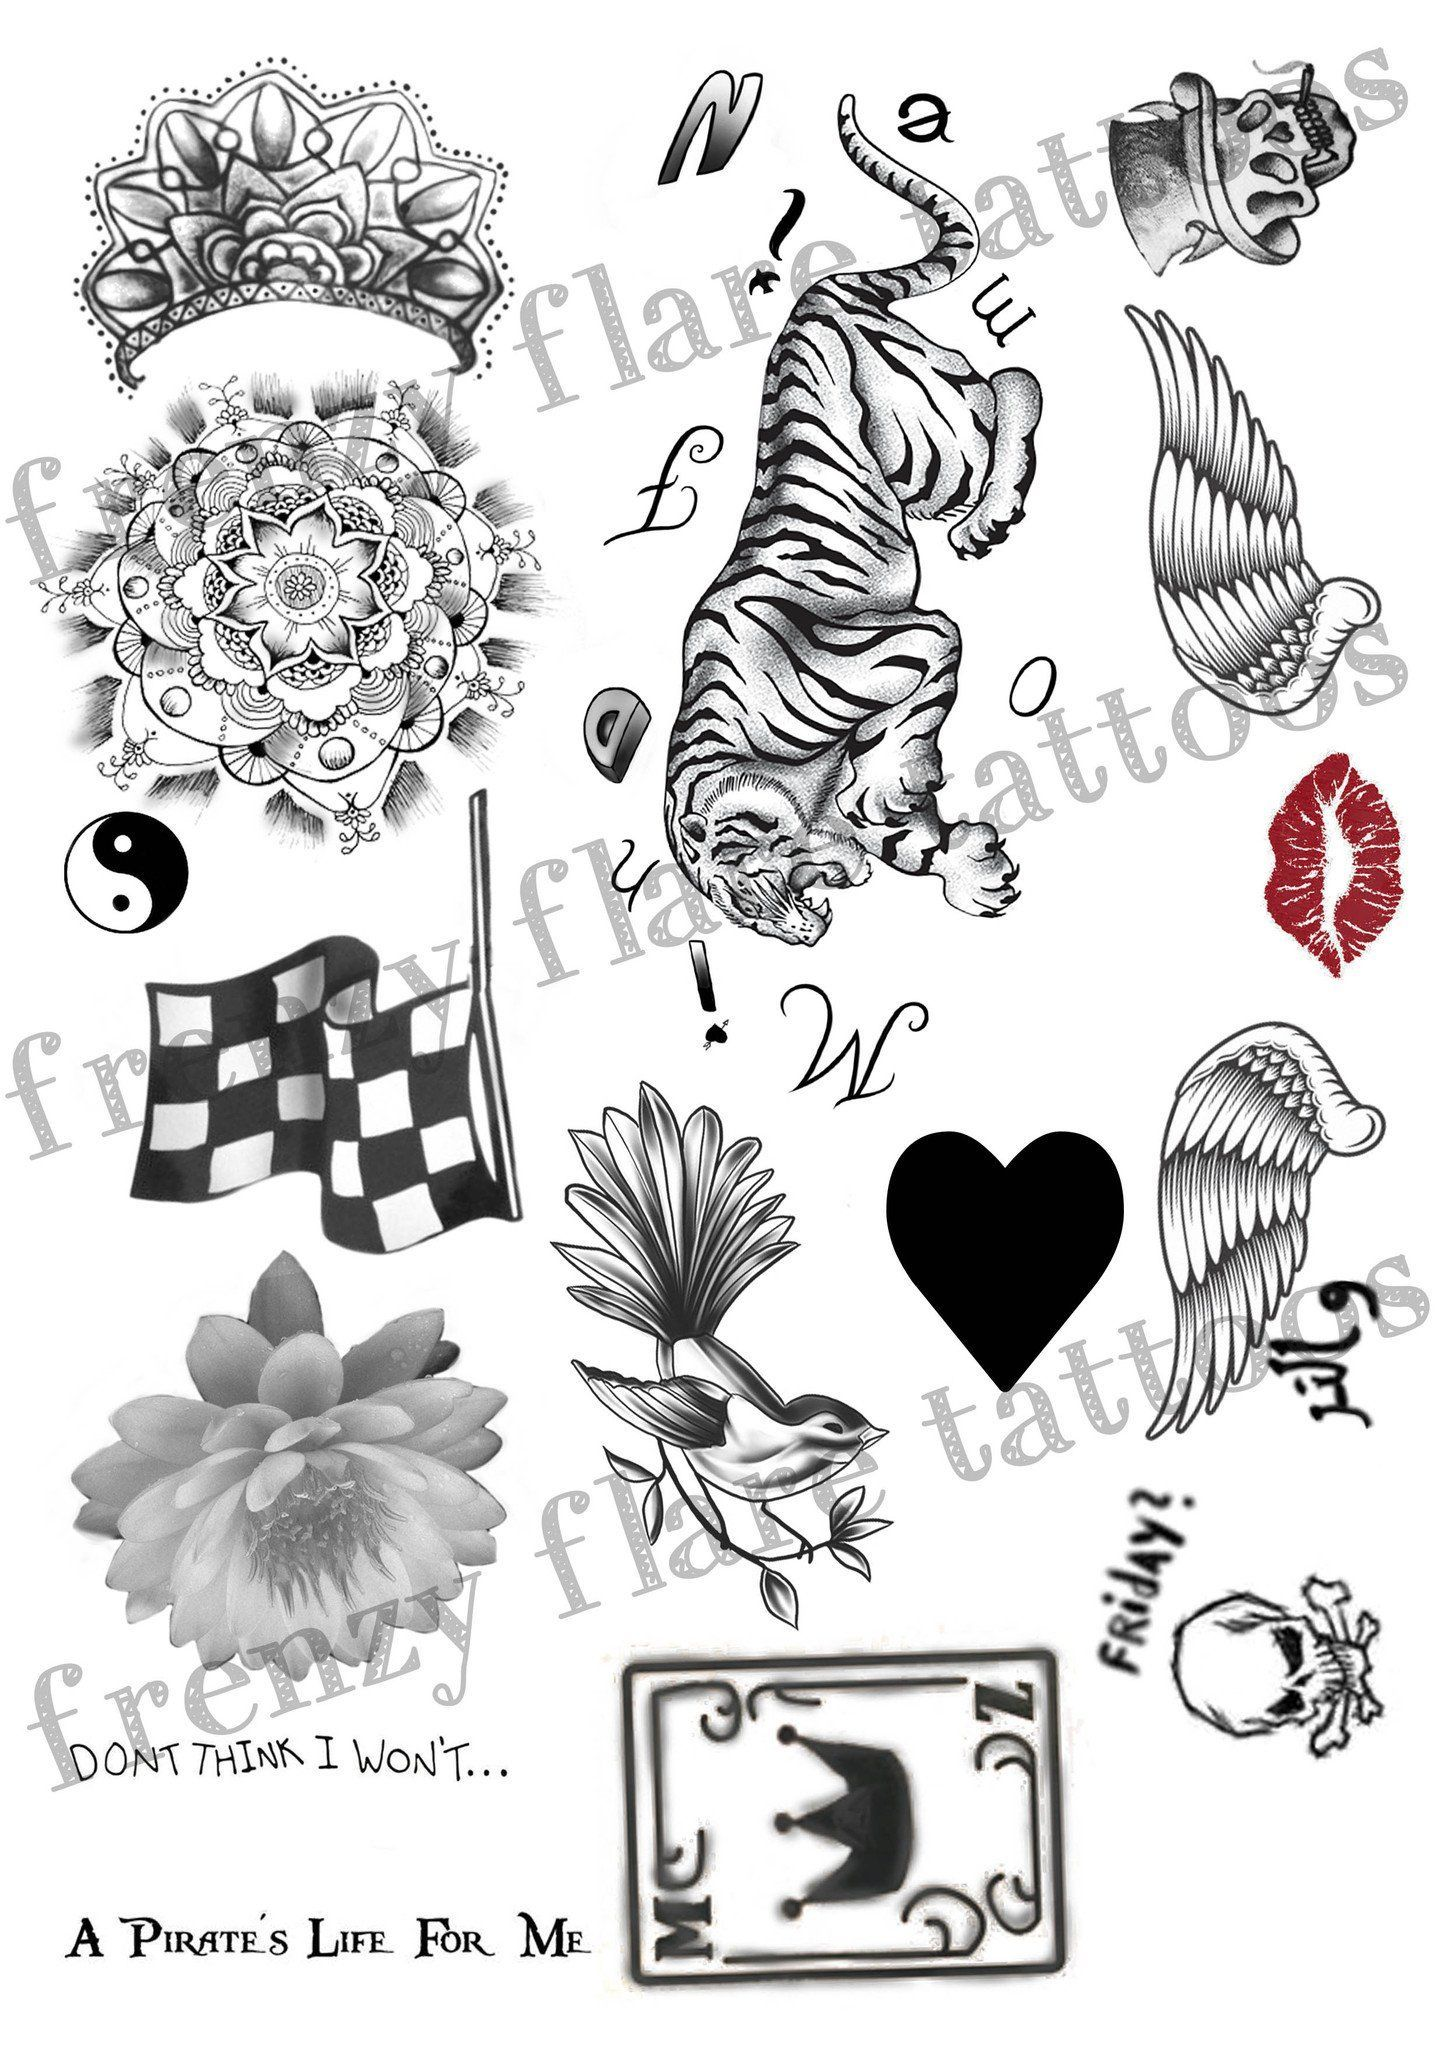 Zayn Malik Inspired Temporary Tattoos 2017 Complete Set 2 Full Pages With Real Size Tattoos Up To Date Perfect For Music Costume Party Zayn Malik Tattoos Zayn Malik Drawing Polynesian Tattoo